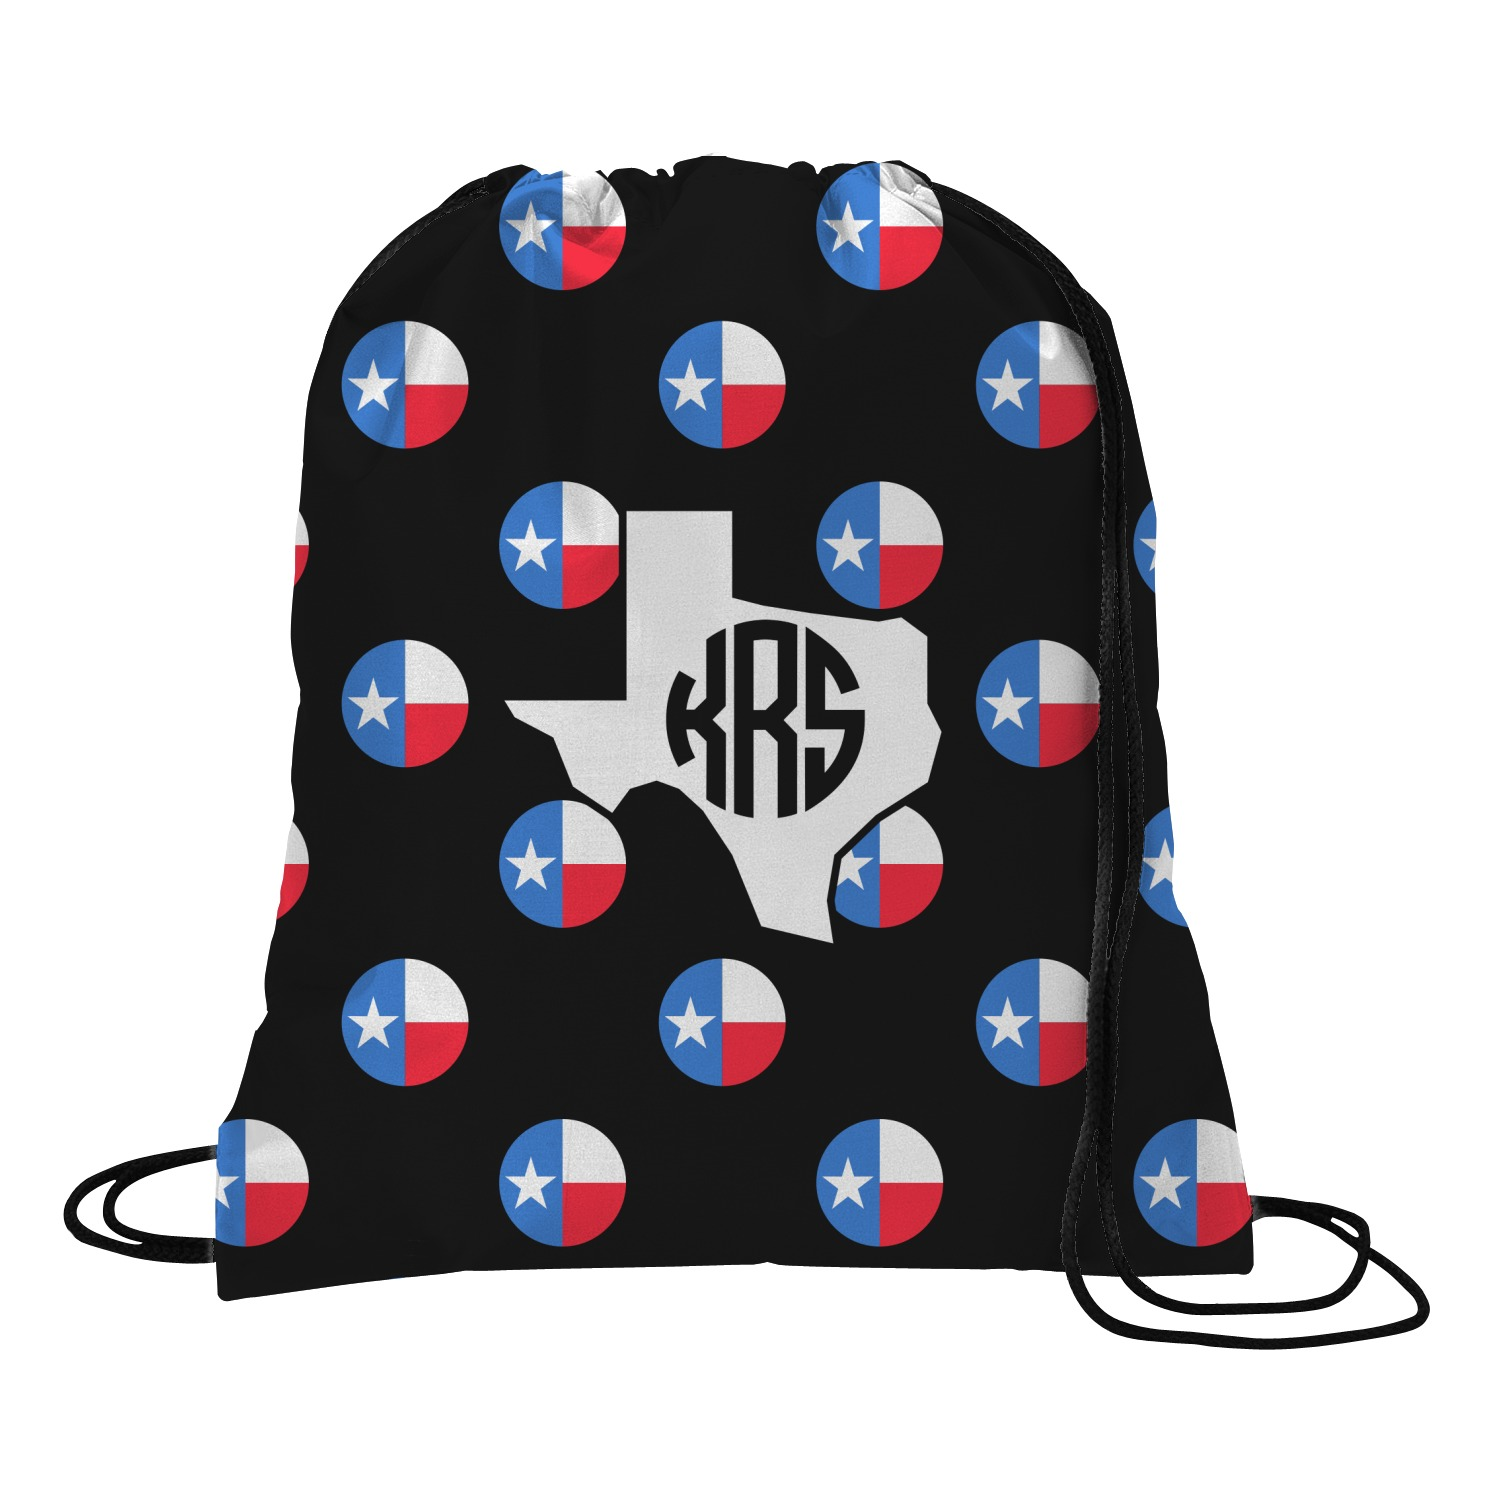 d1a5a7b07a6b Texas Polka Dots Drawstring Backpack (Personalized) - YouCustomizeIt